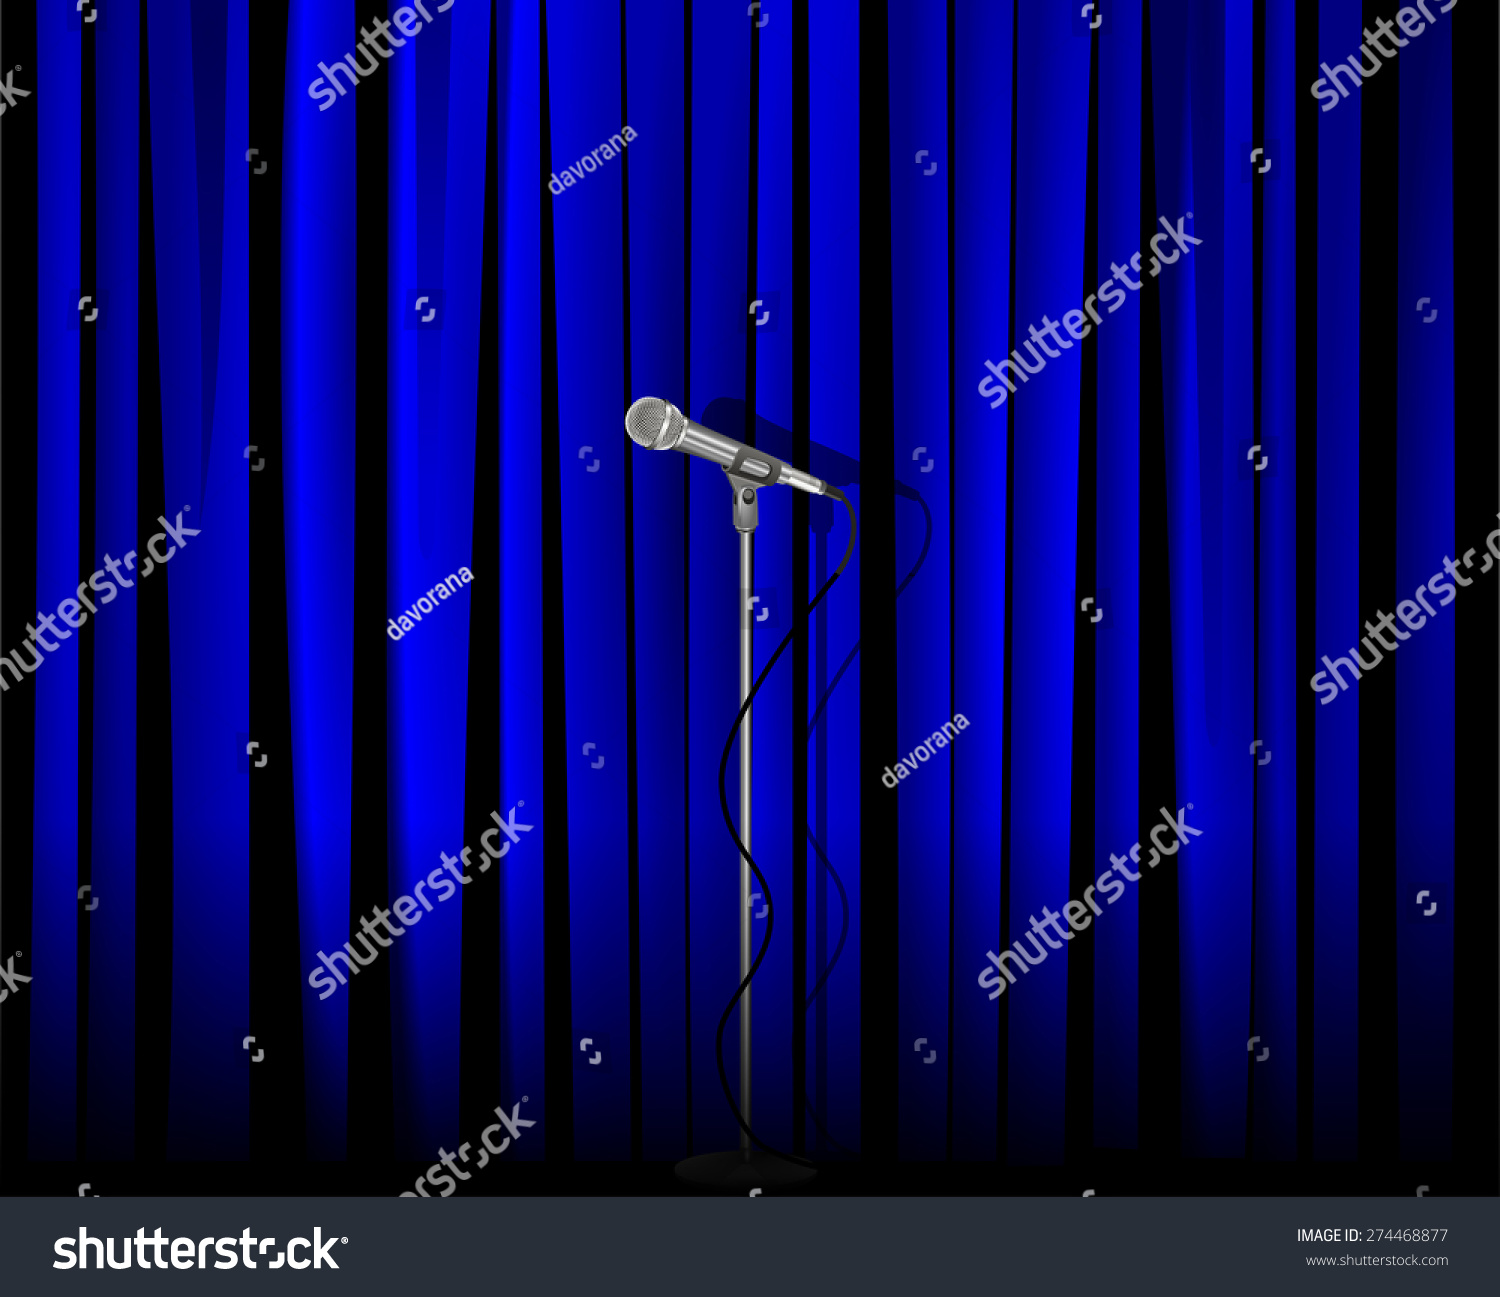 Blue curtain backdrop - Vintage Metal Microphone Against Blue Curtain Backdrop Mic On Empty Theatre Stage Vector Art